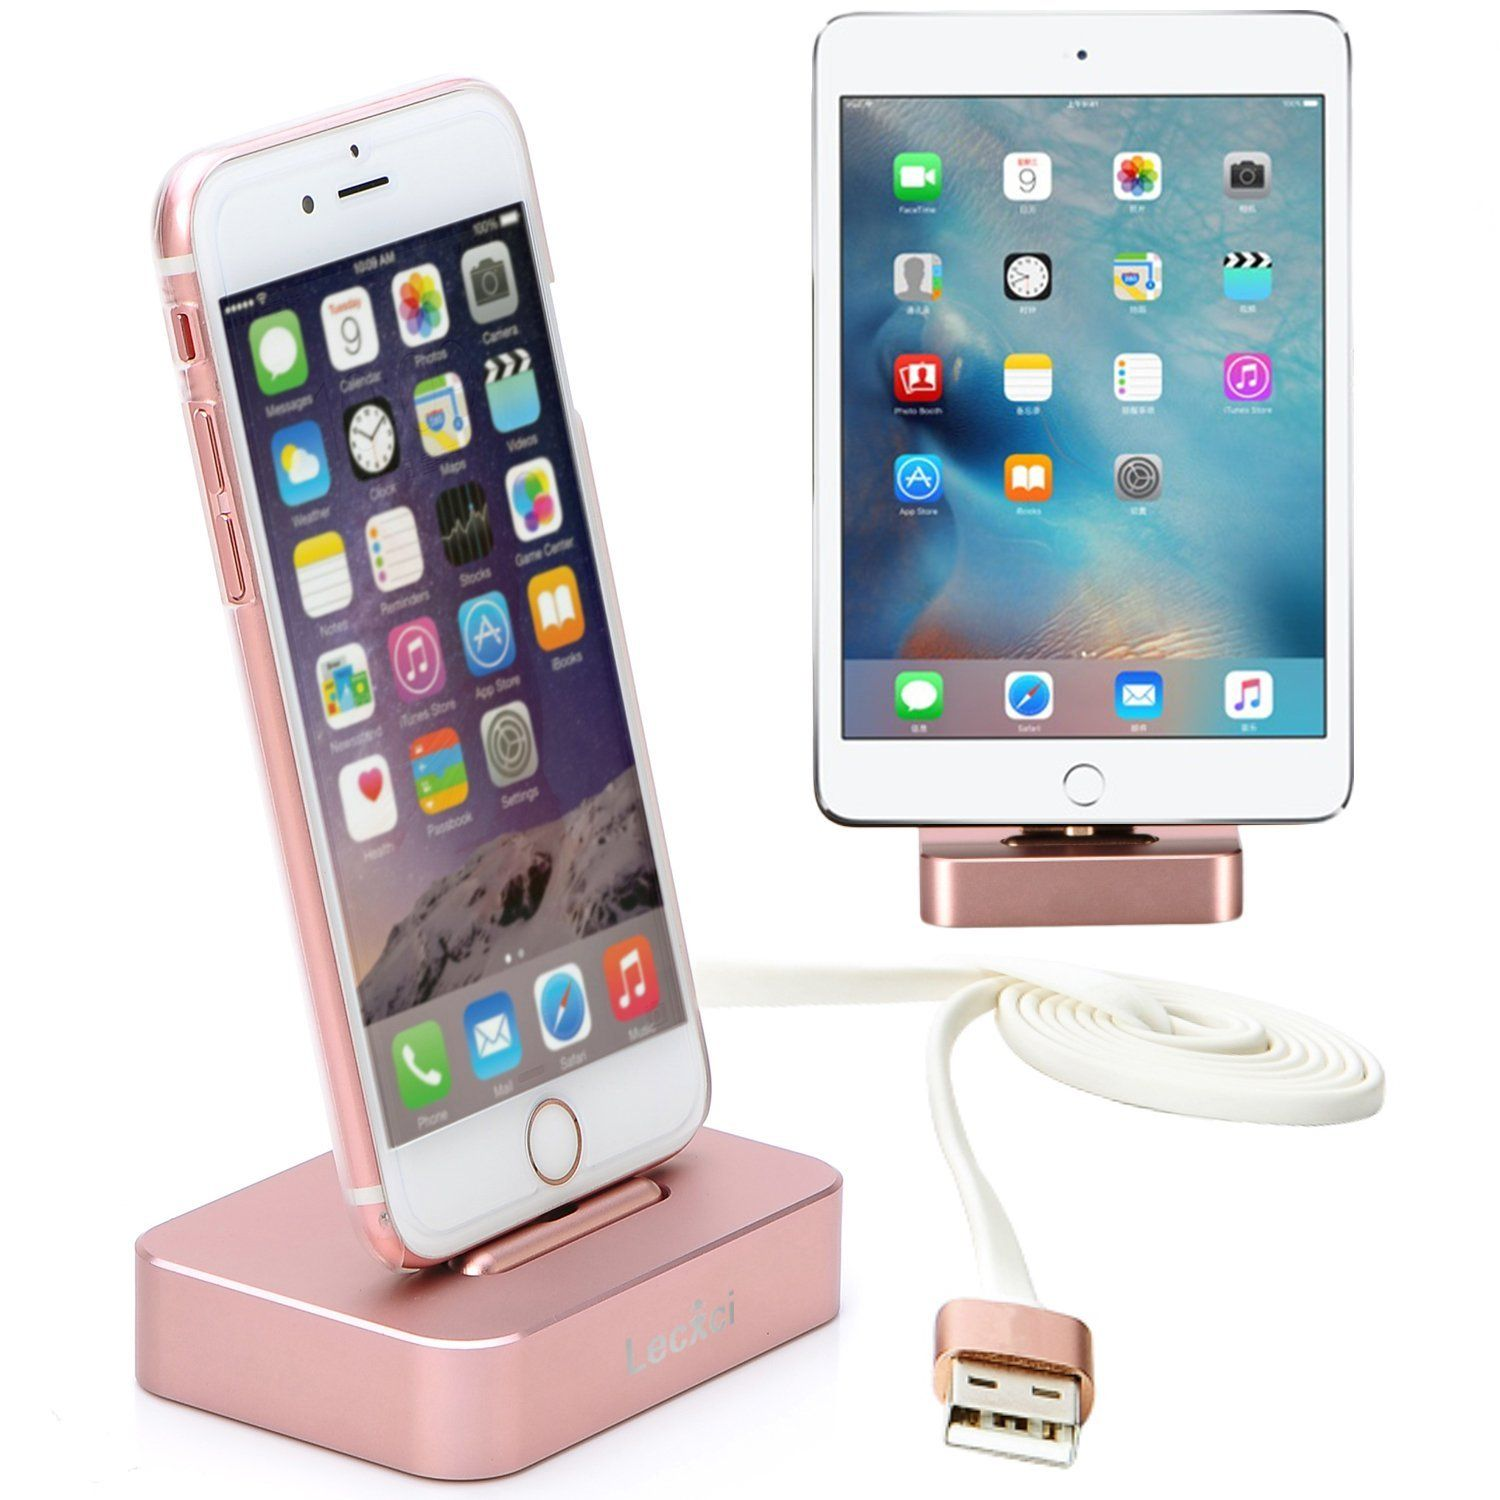 Apple iPhone iPad Mini Charger Stand 7357ab3cca